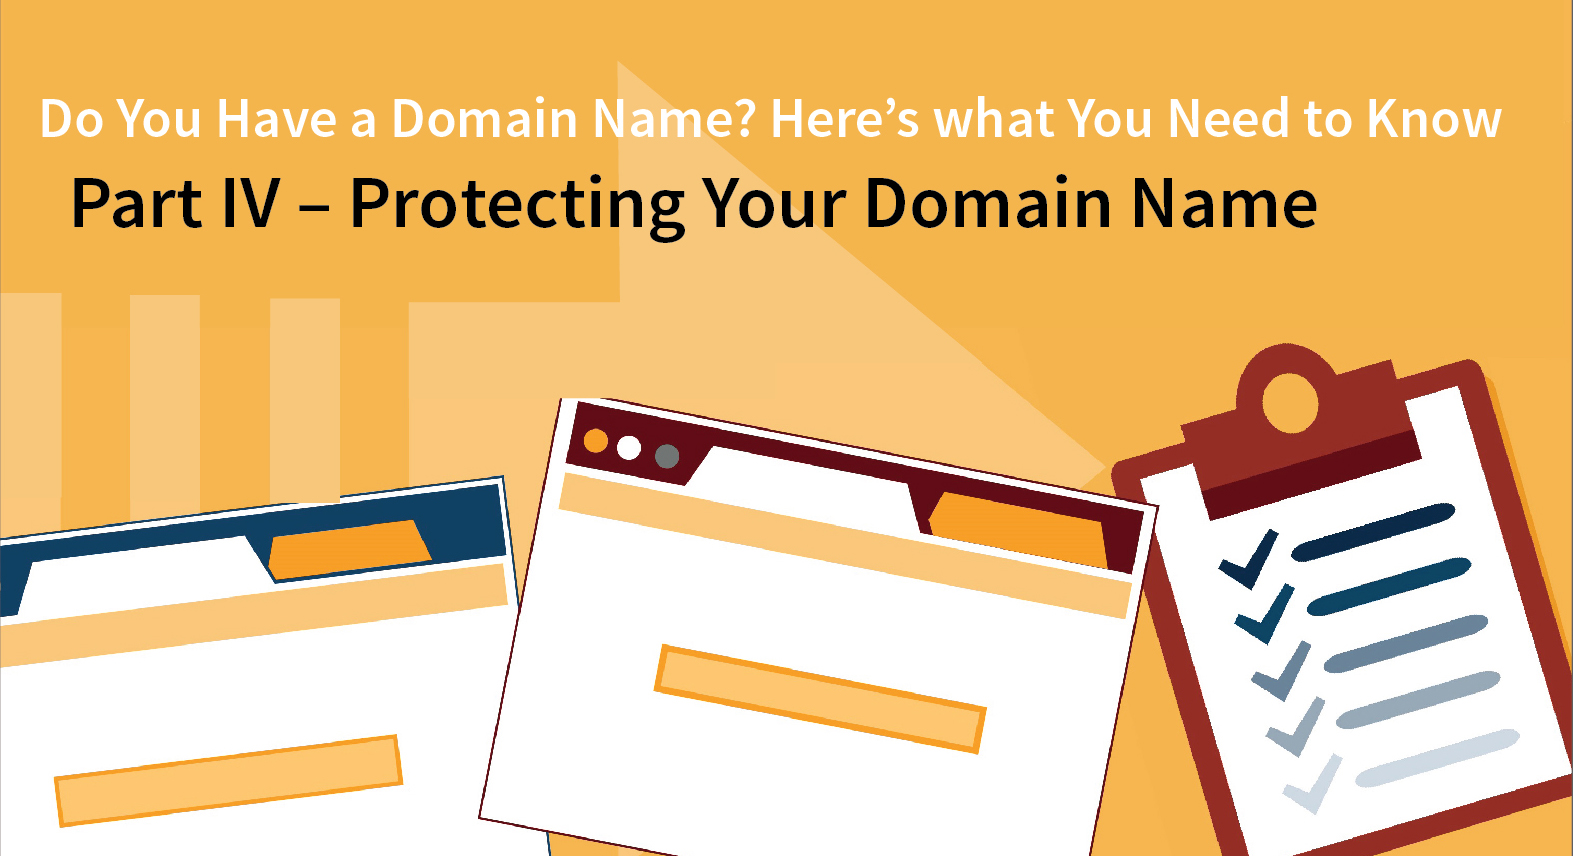 Protecting domain name 1573x856 26mar18 en